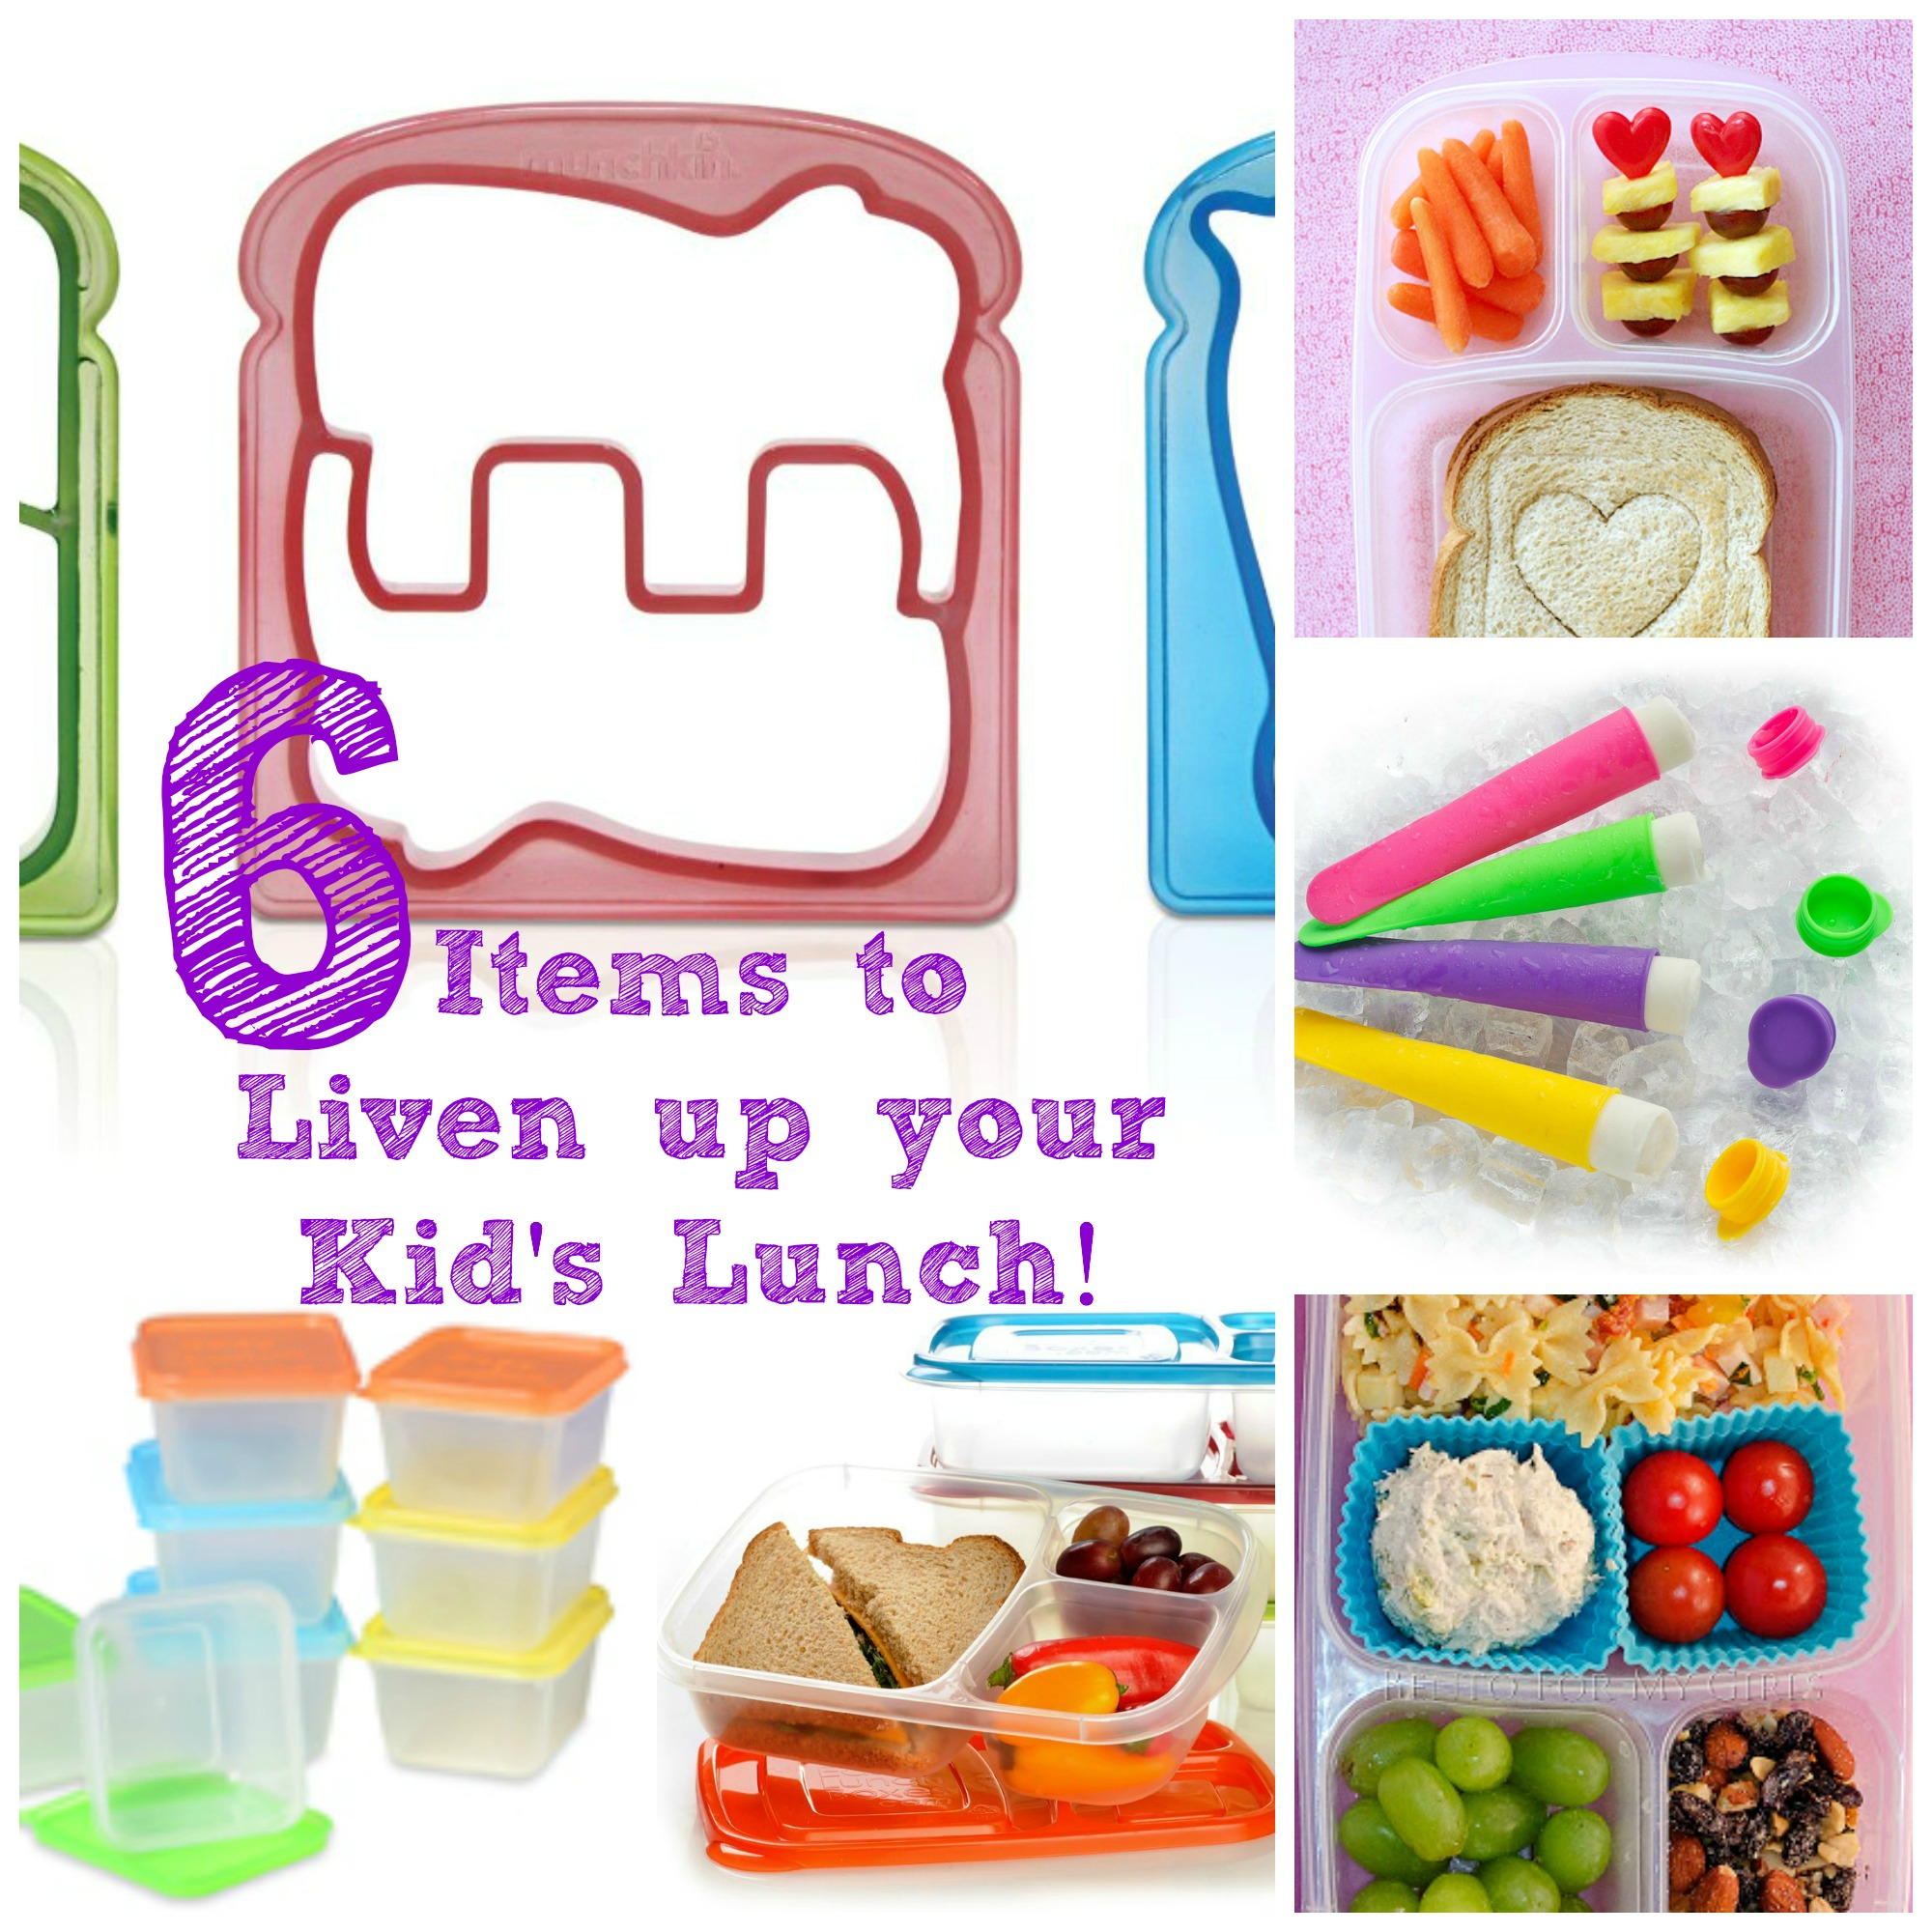 6 Items to Liven up Kids Lunch